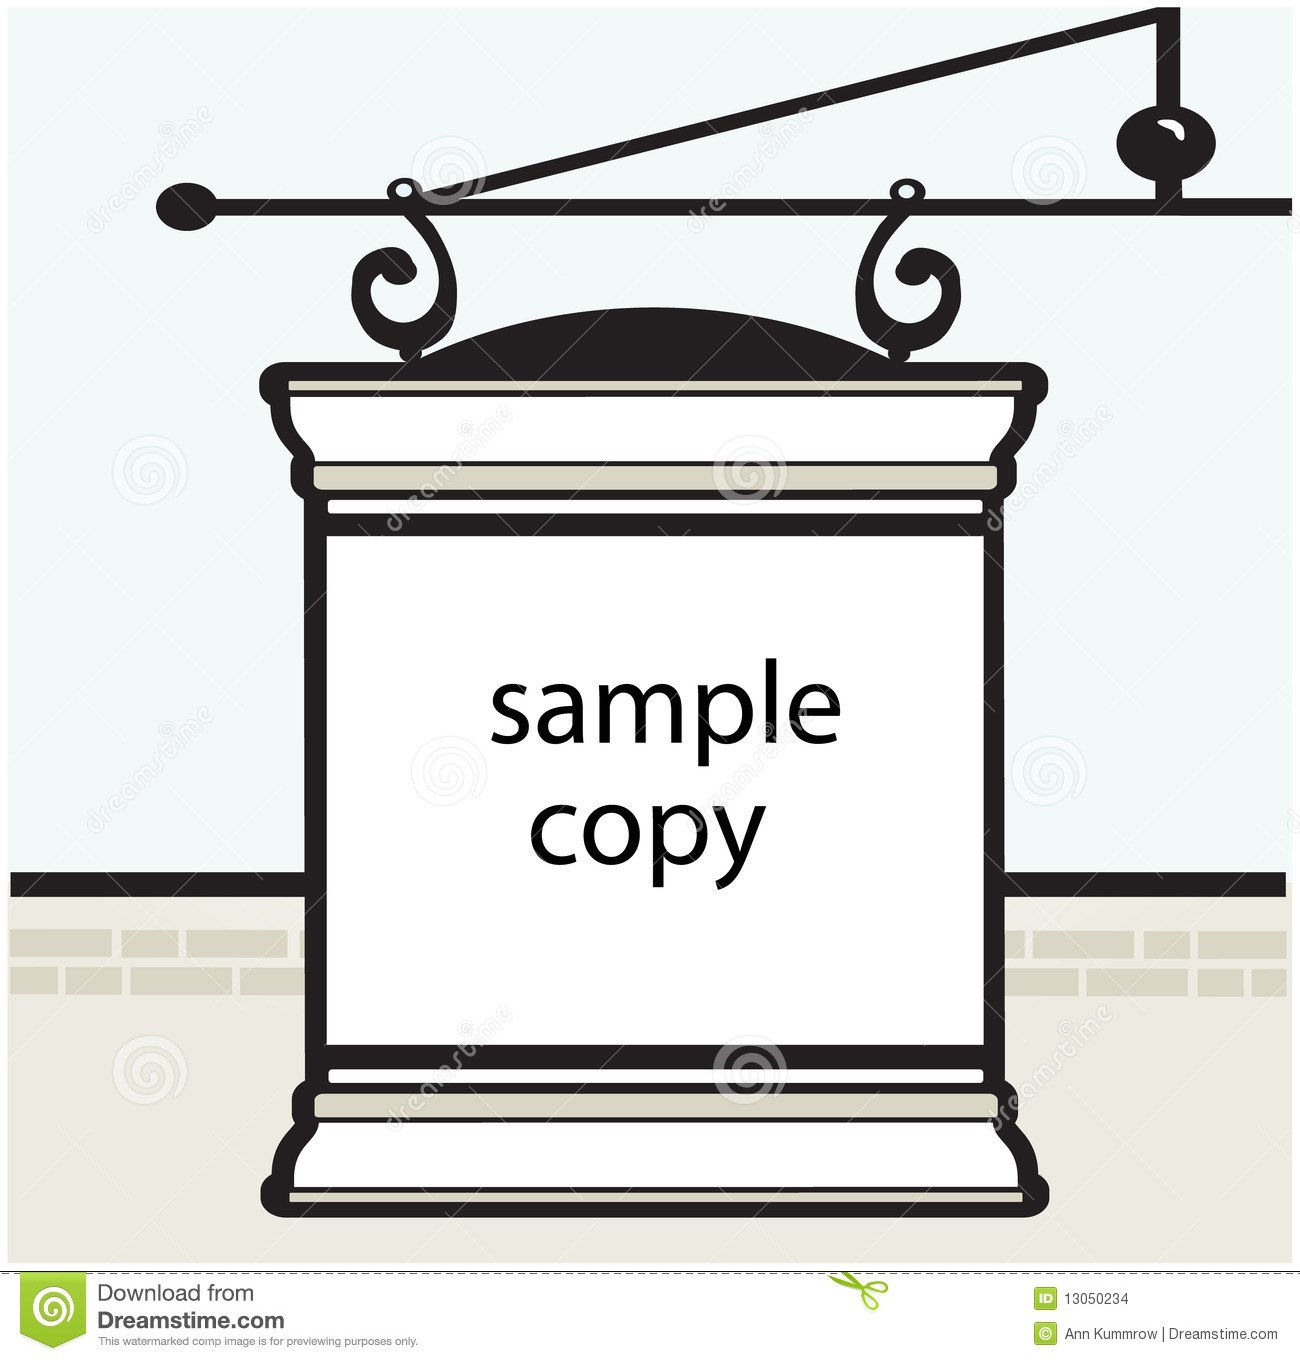 Clipart sign in sheet jpg transparent stock Template Sign. paper table card sign template royalty free stock ... jpg transparent stock